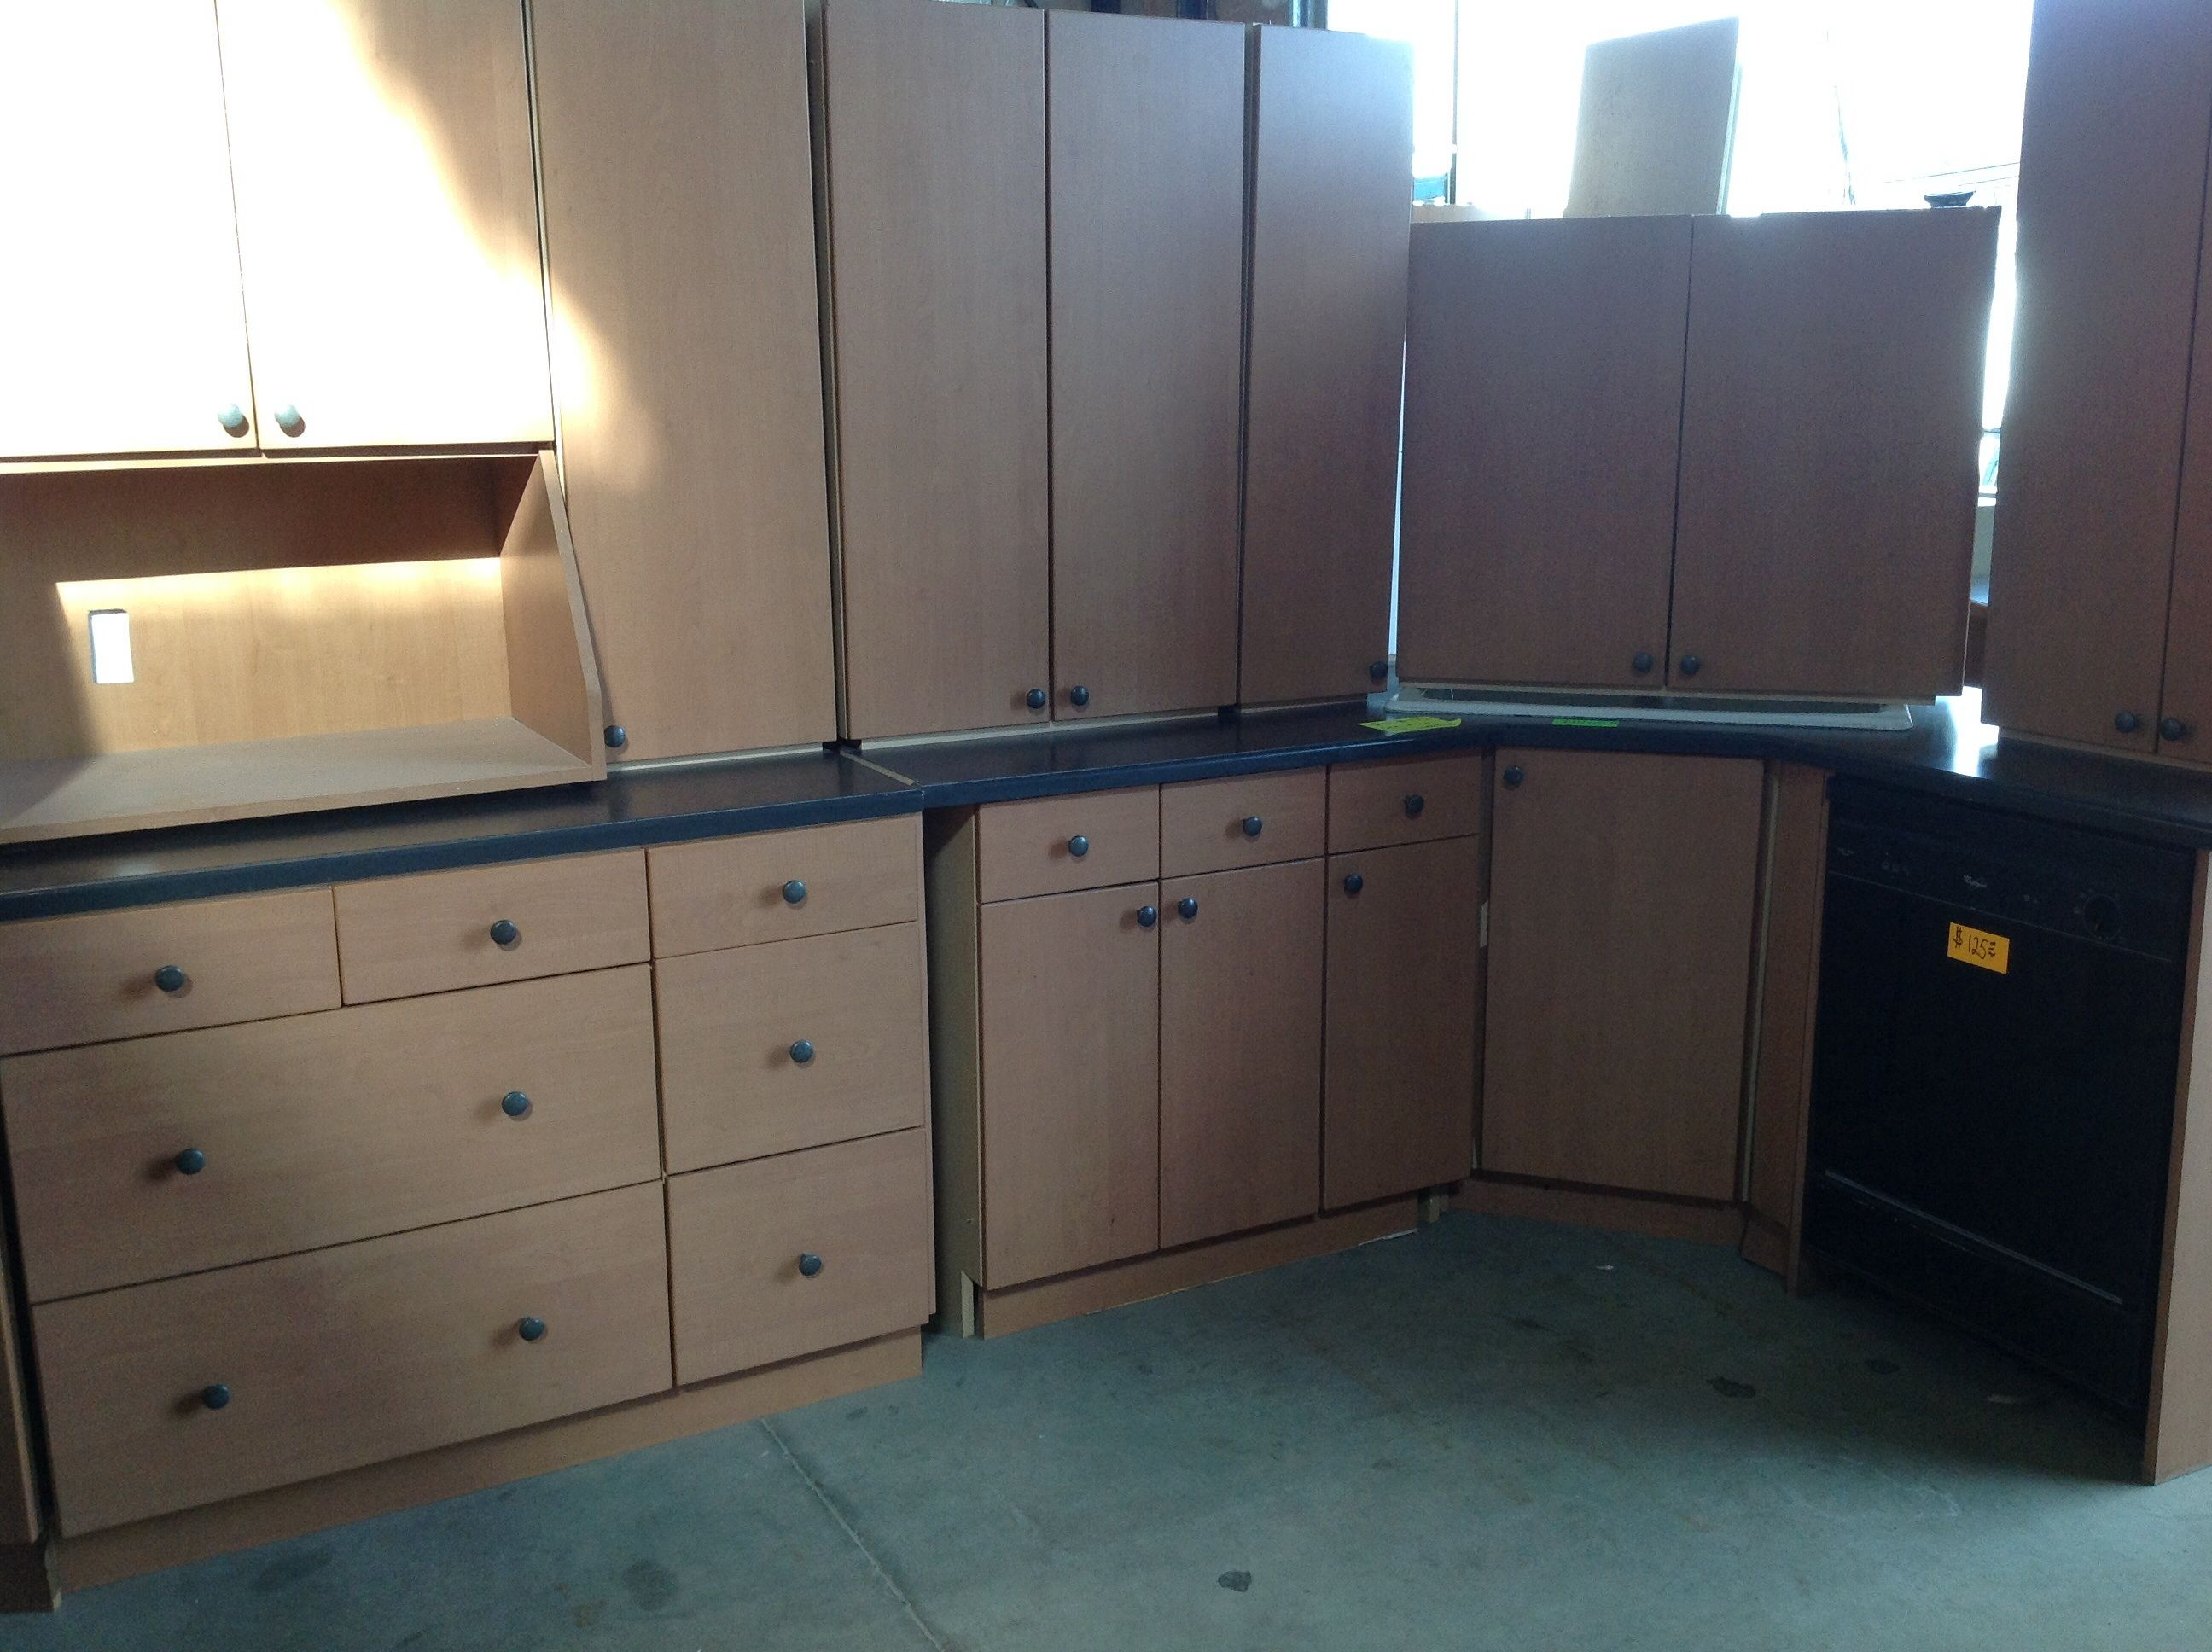 Used Kitchen Set For Sale At Chilliwack New And Used Building Materials Inc Kitchen Sets Window Handles Kitchen Cabinet Doors